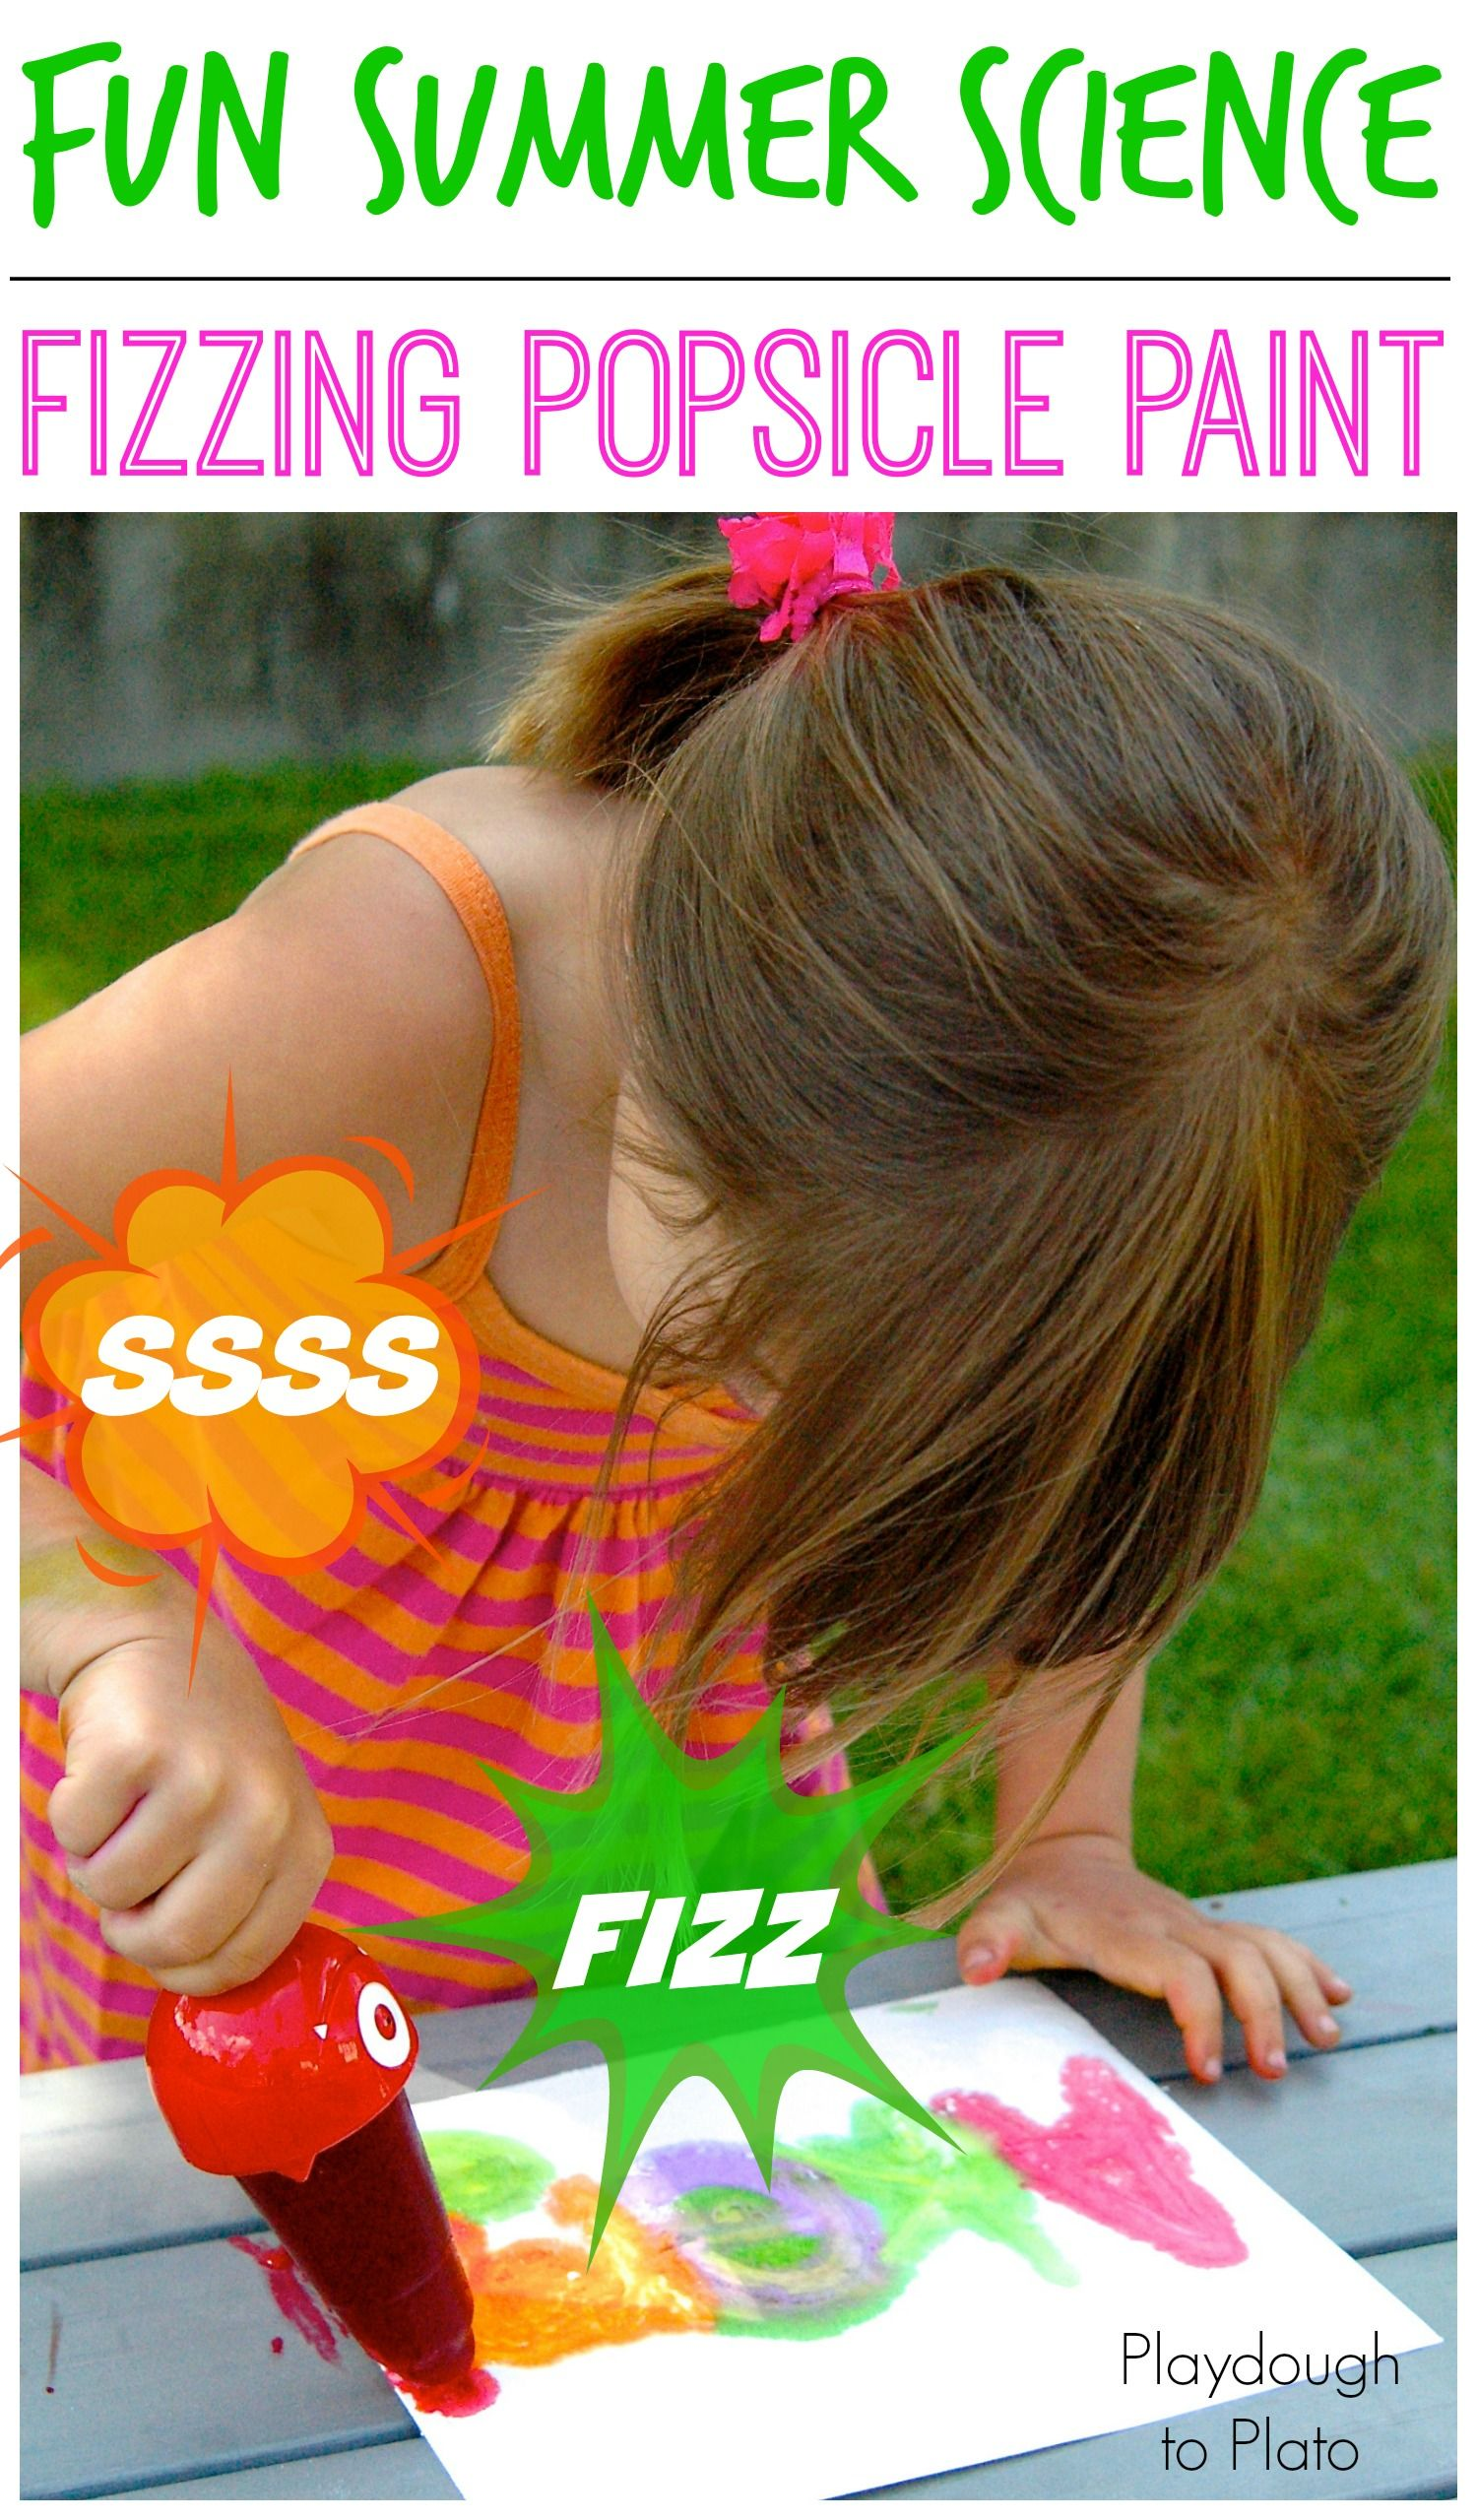 Magic Fizzing Popsicle Paint - Playdough To Plato